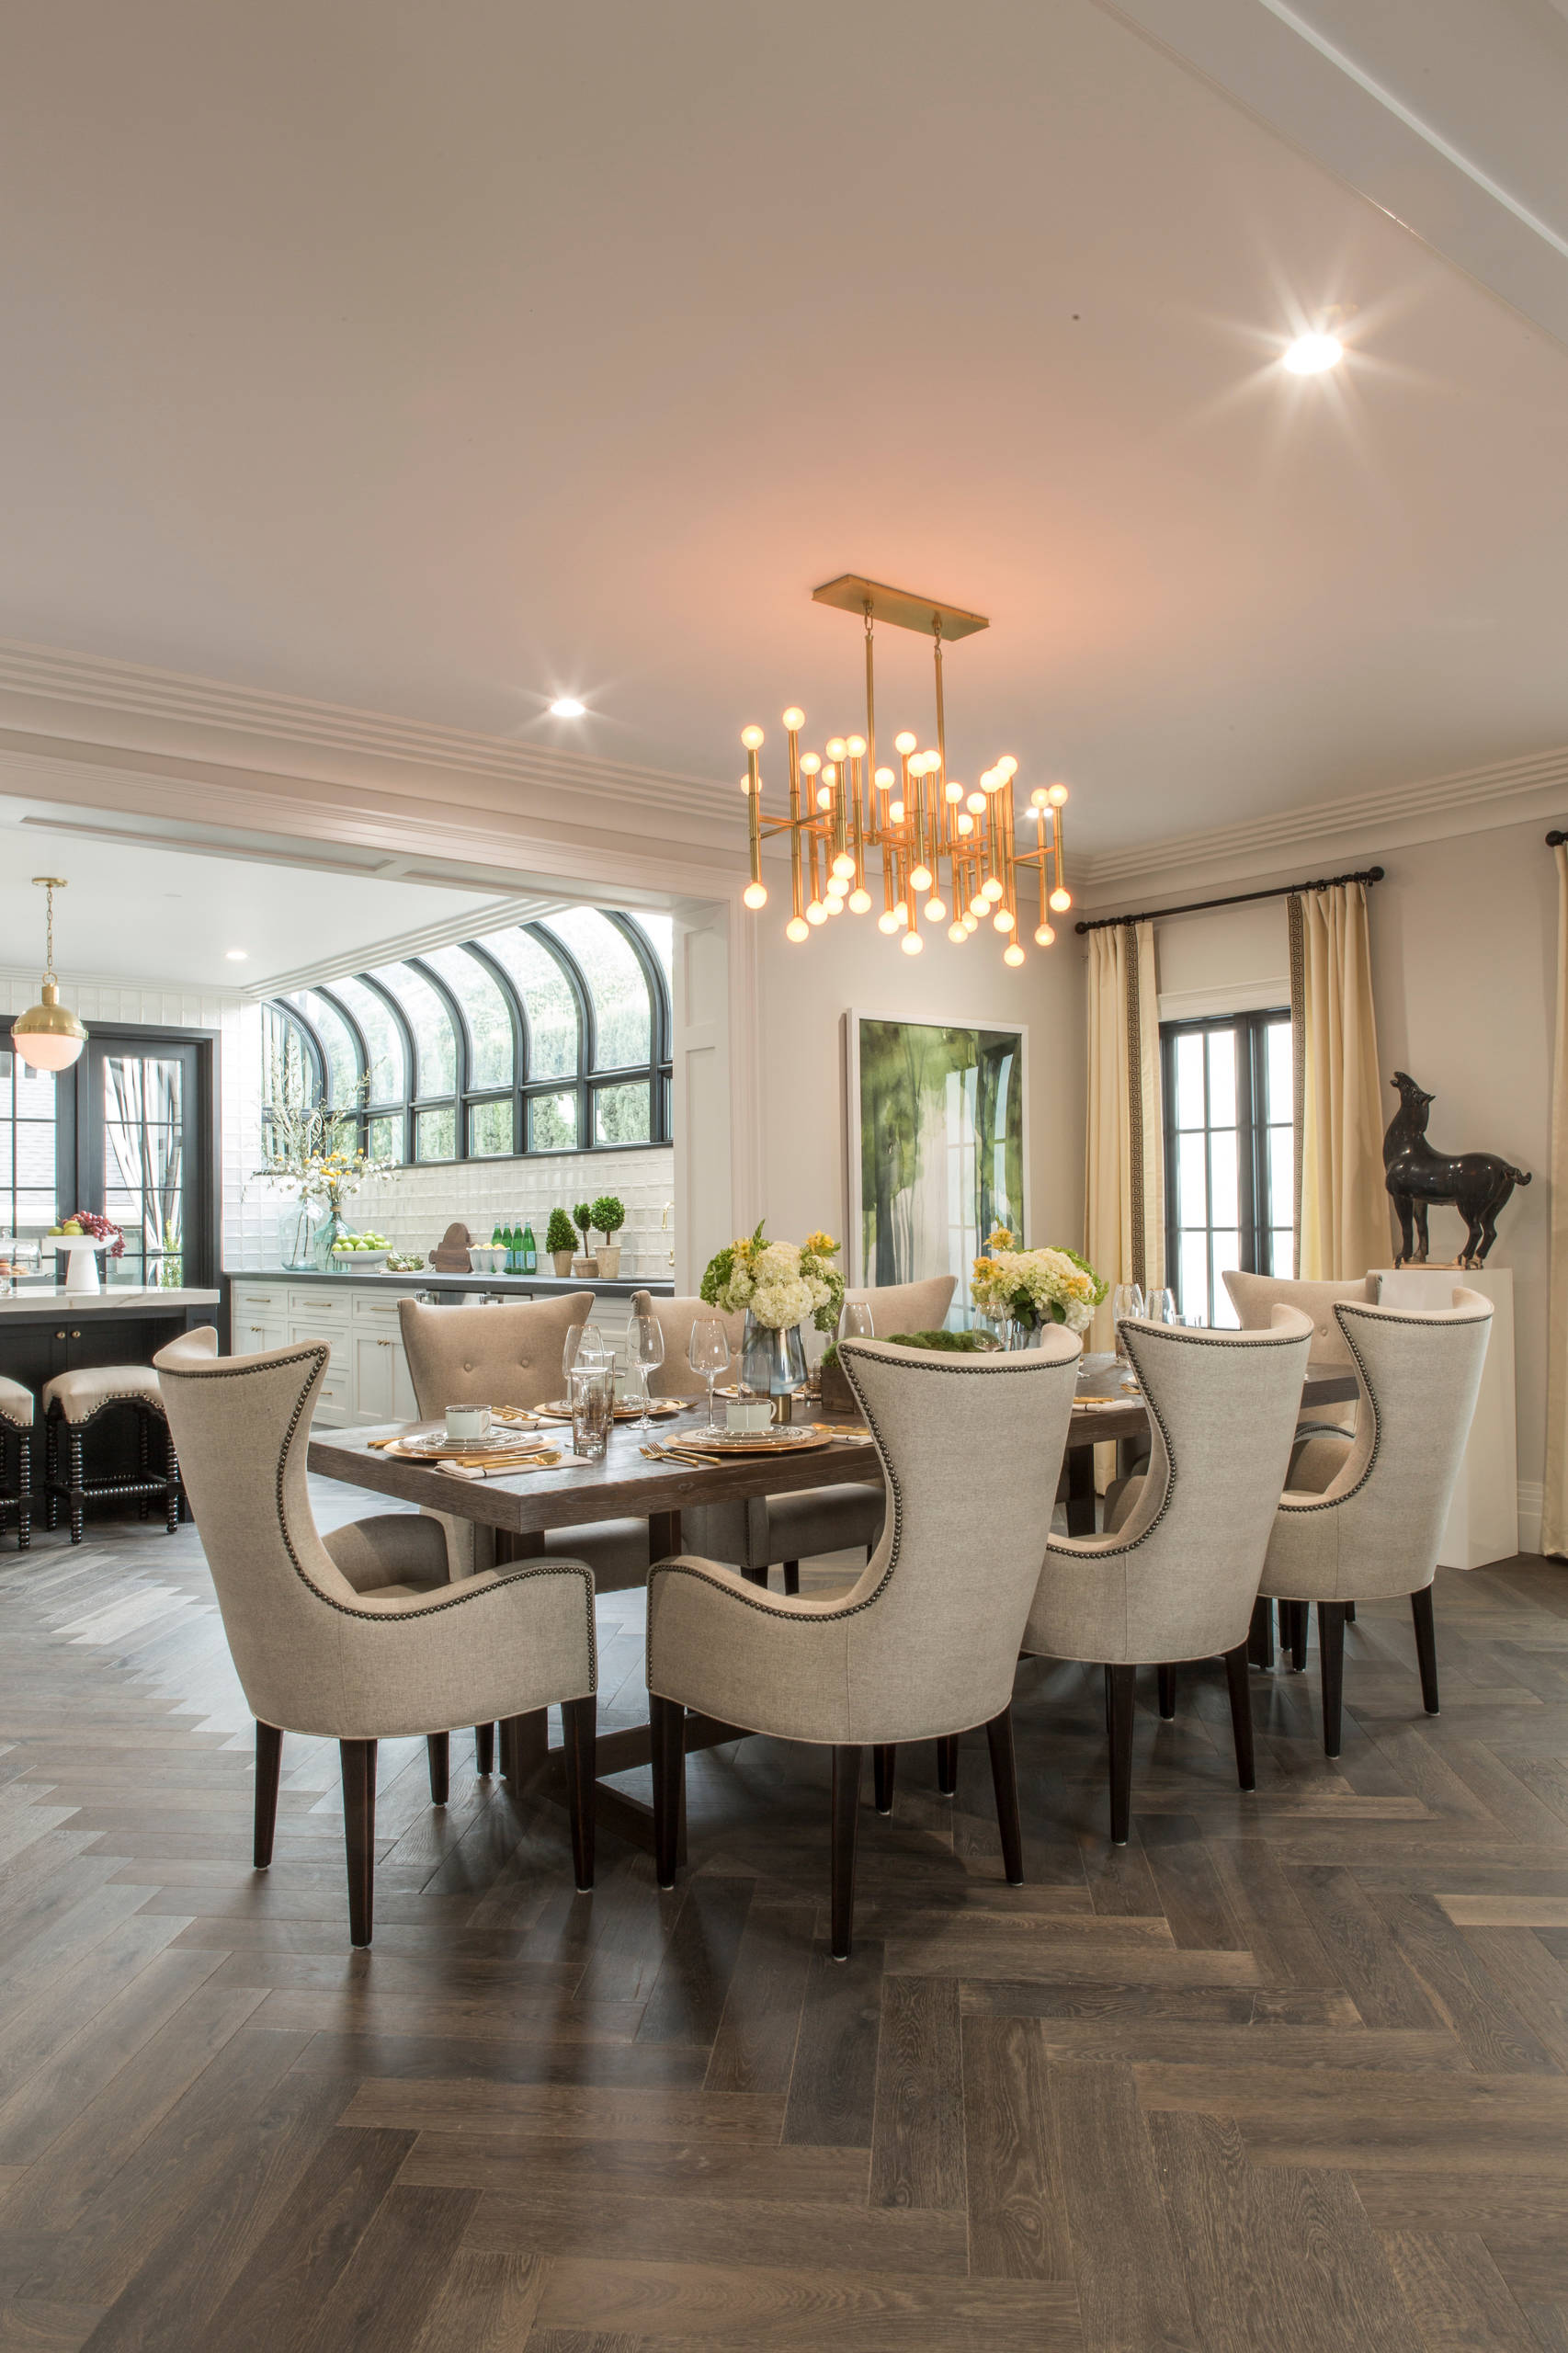 75 Beautiful Eclectic Dining Room Pictures Ideas February 2021 Houzz